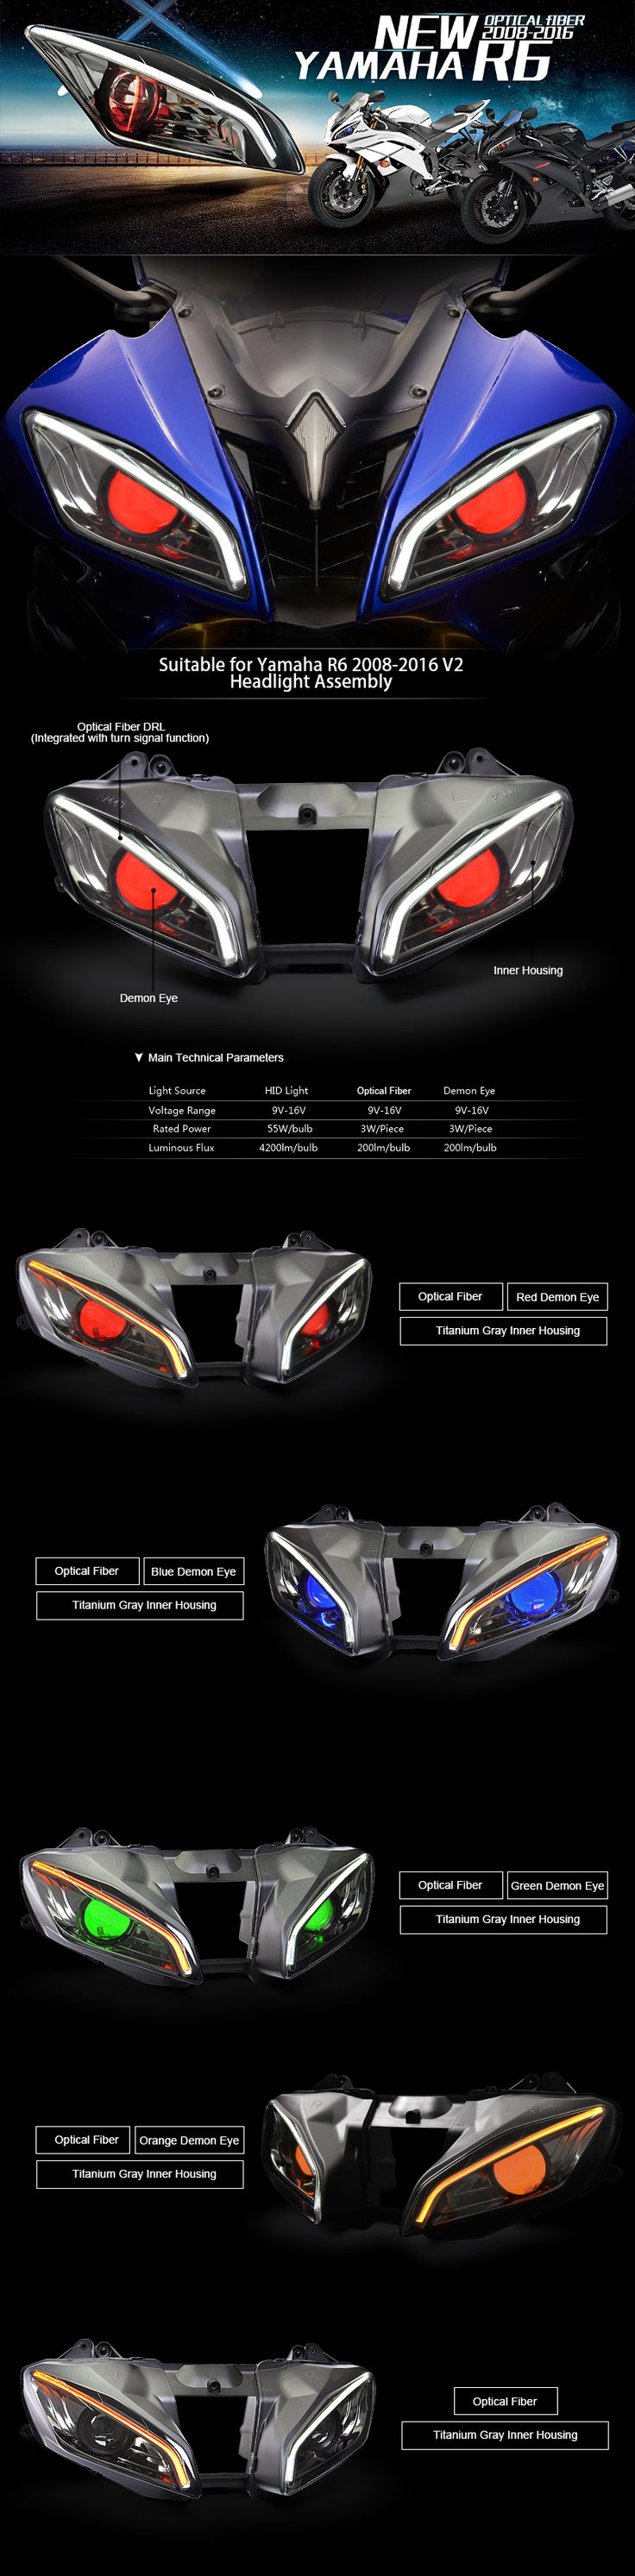 Yamaha YZF R6 optical fiber custom headlight Assembly 2008-2016 V2